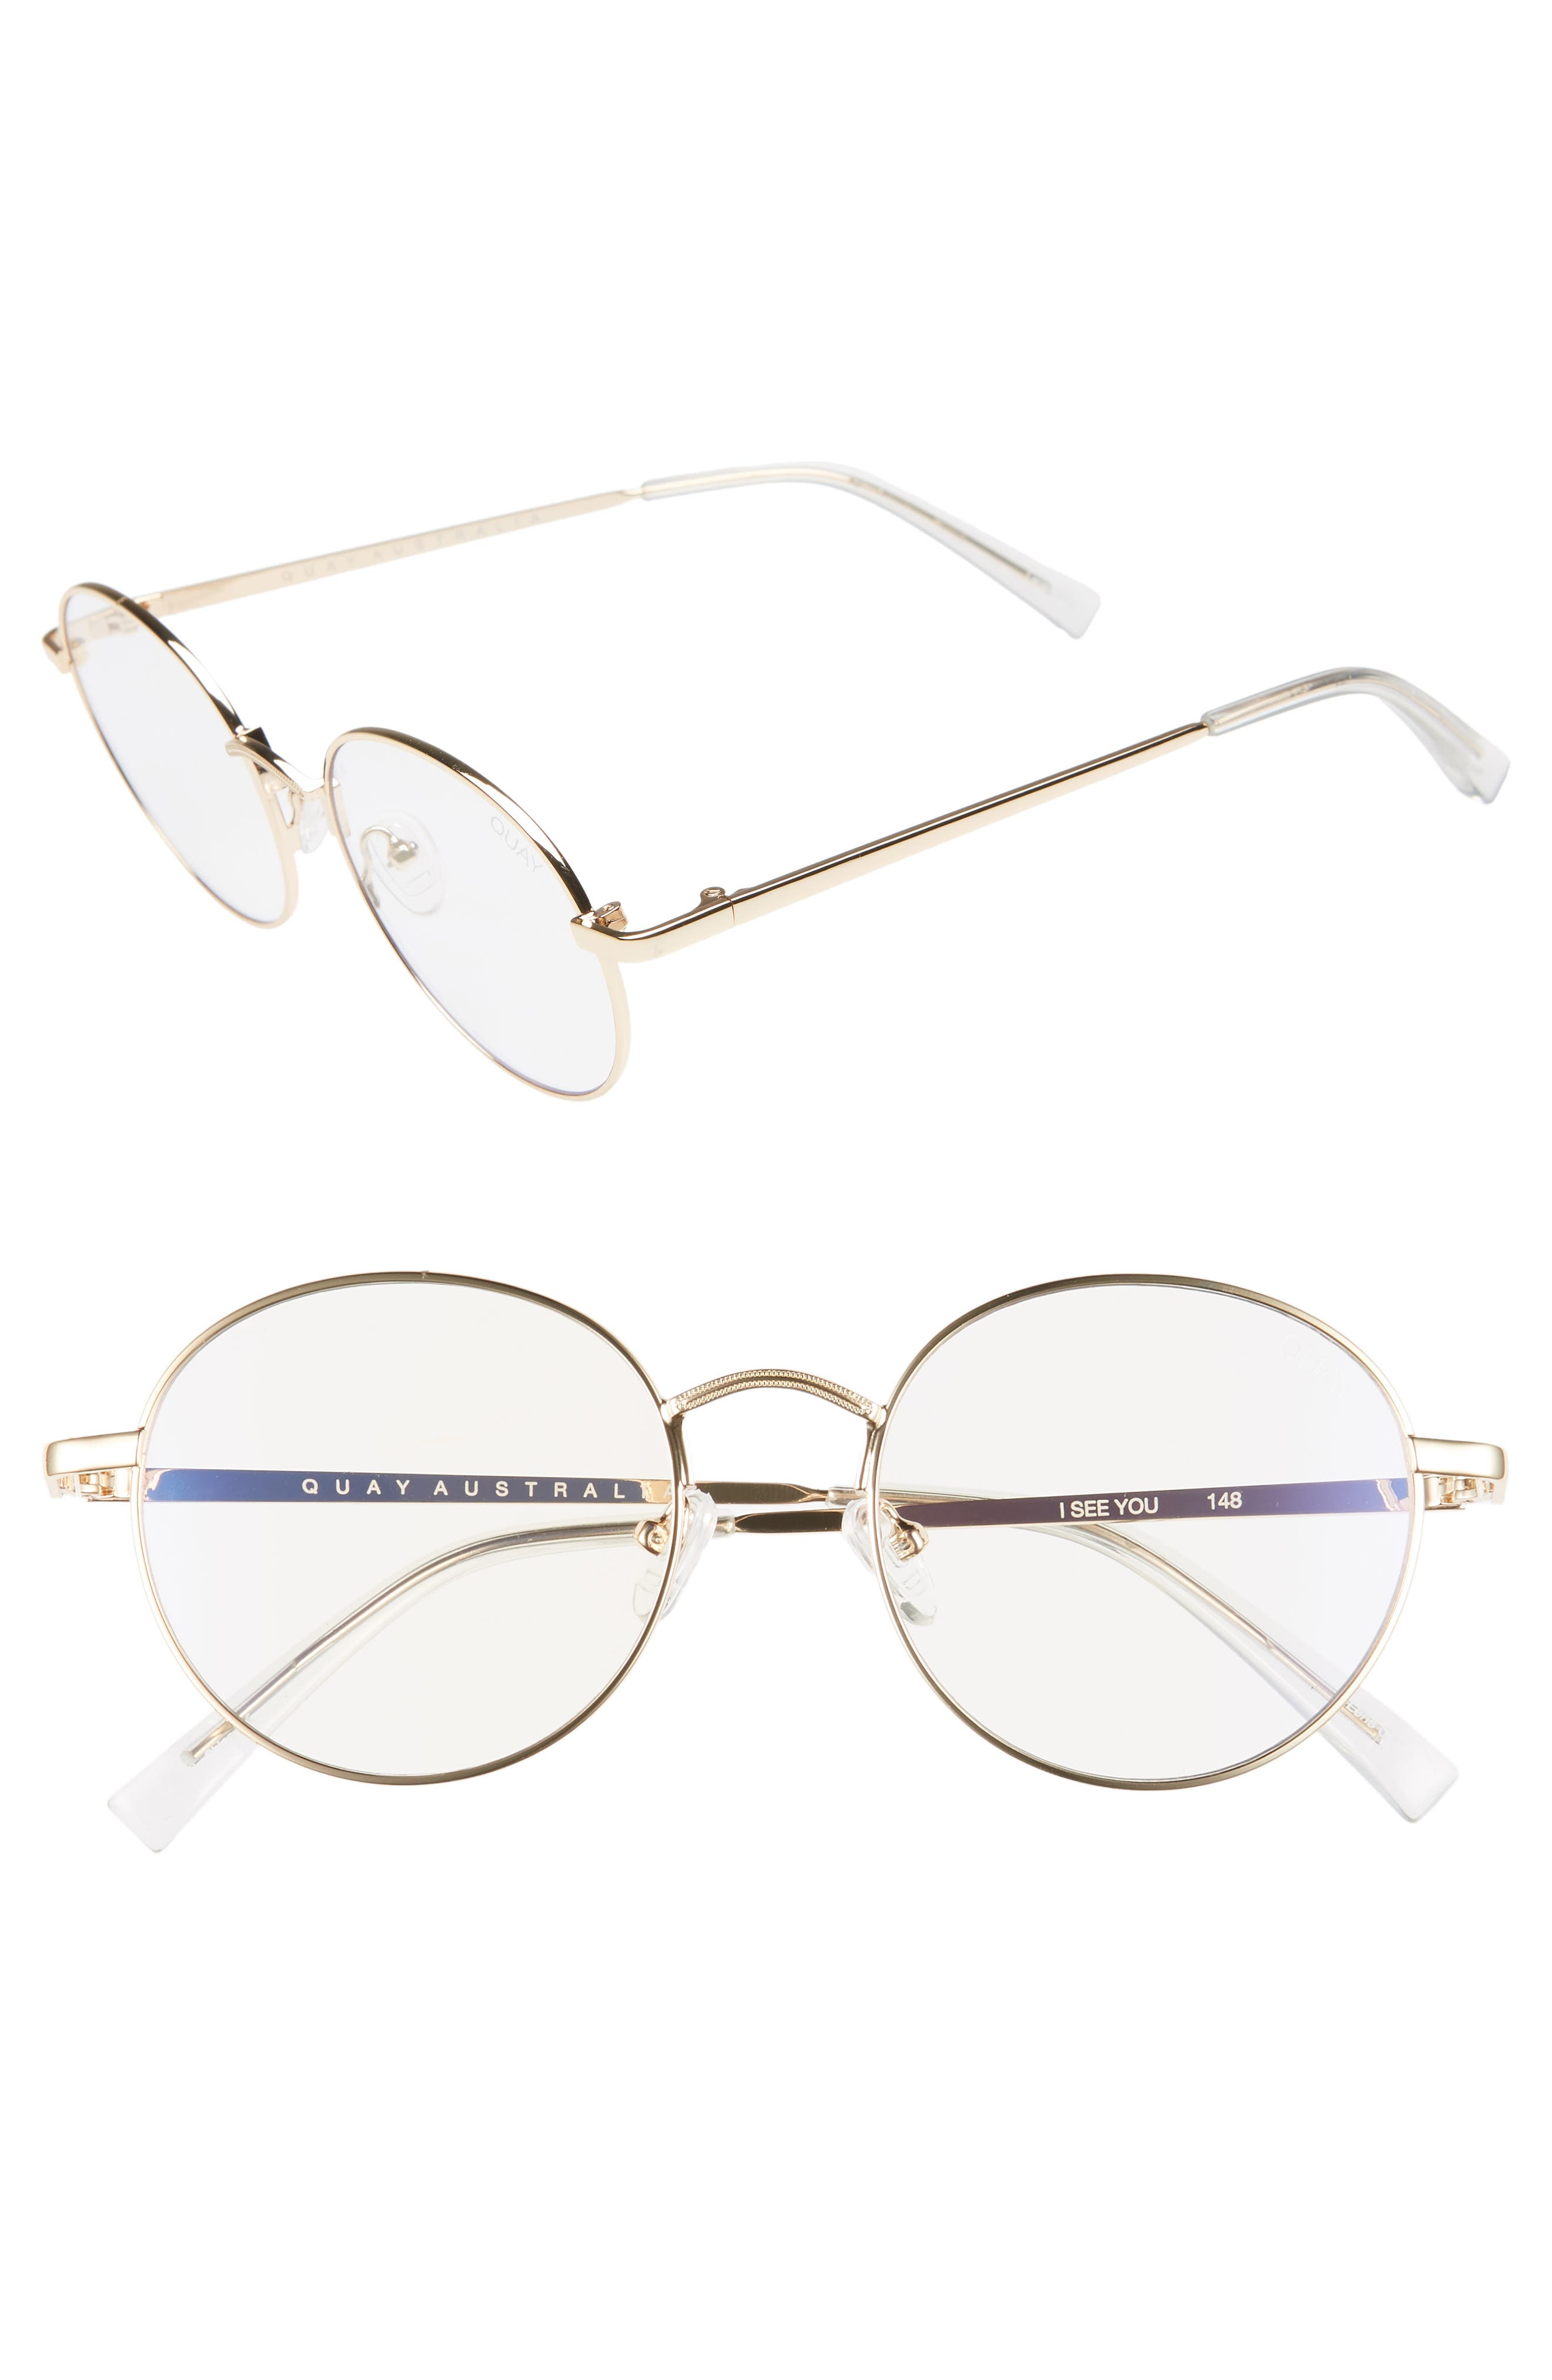 I See You 49mm Round Fashion Glasses,                         Main,                         color, GOLD/ CLEAR